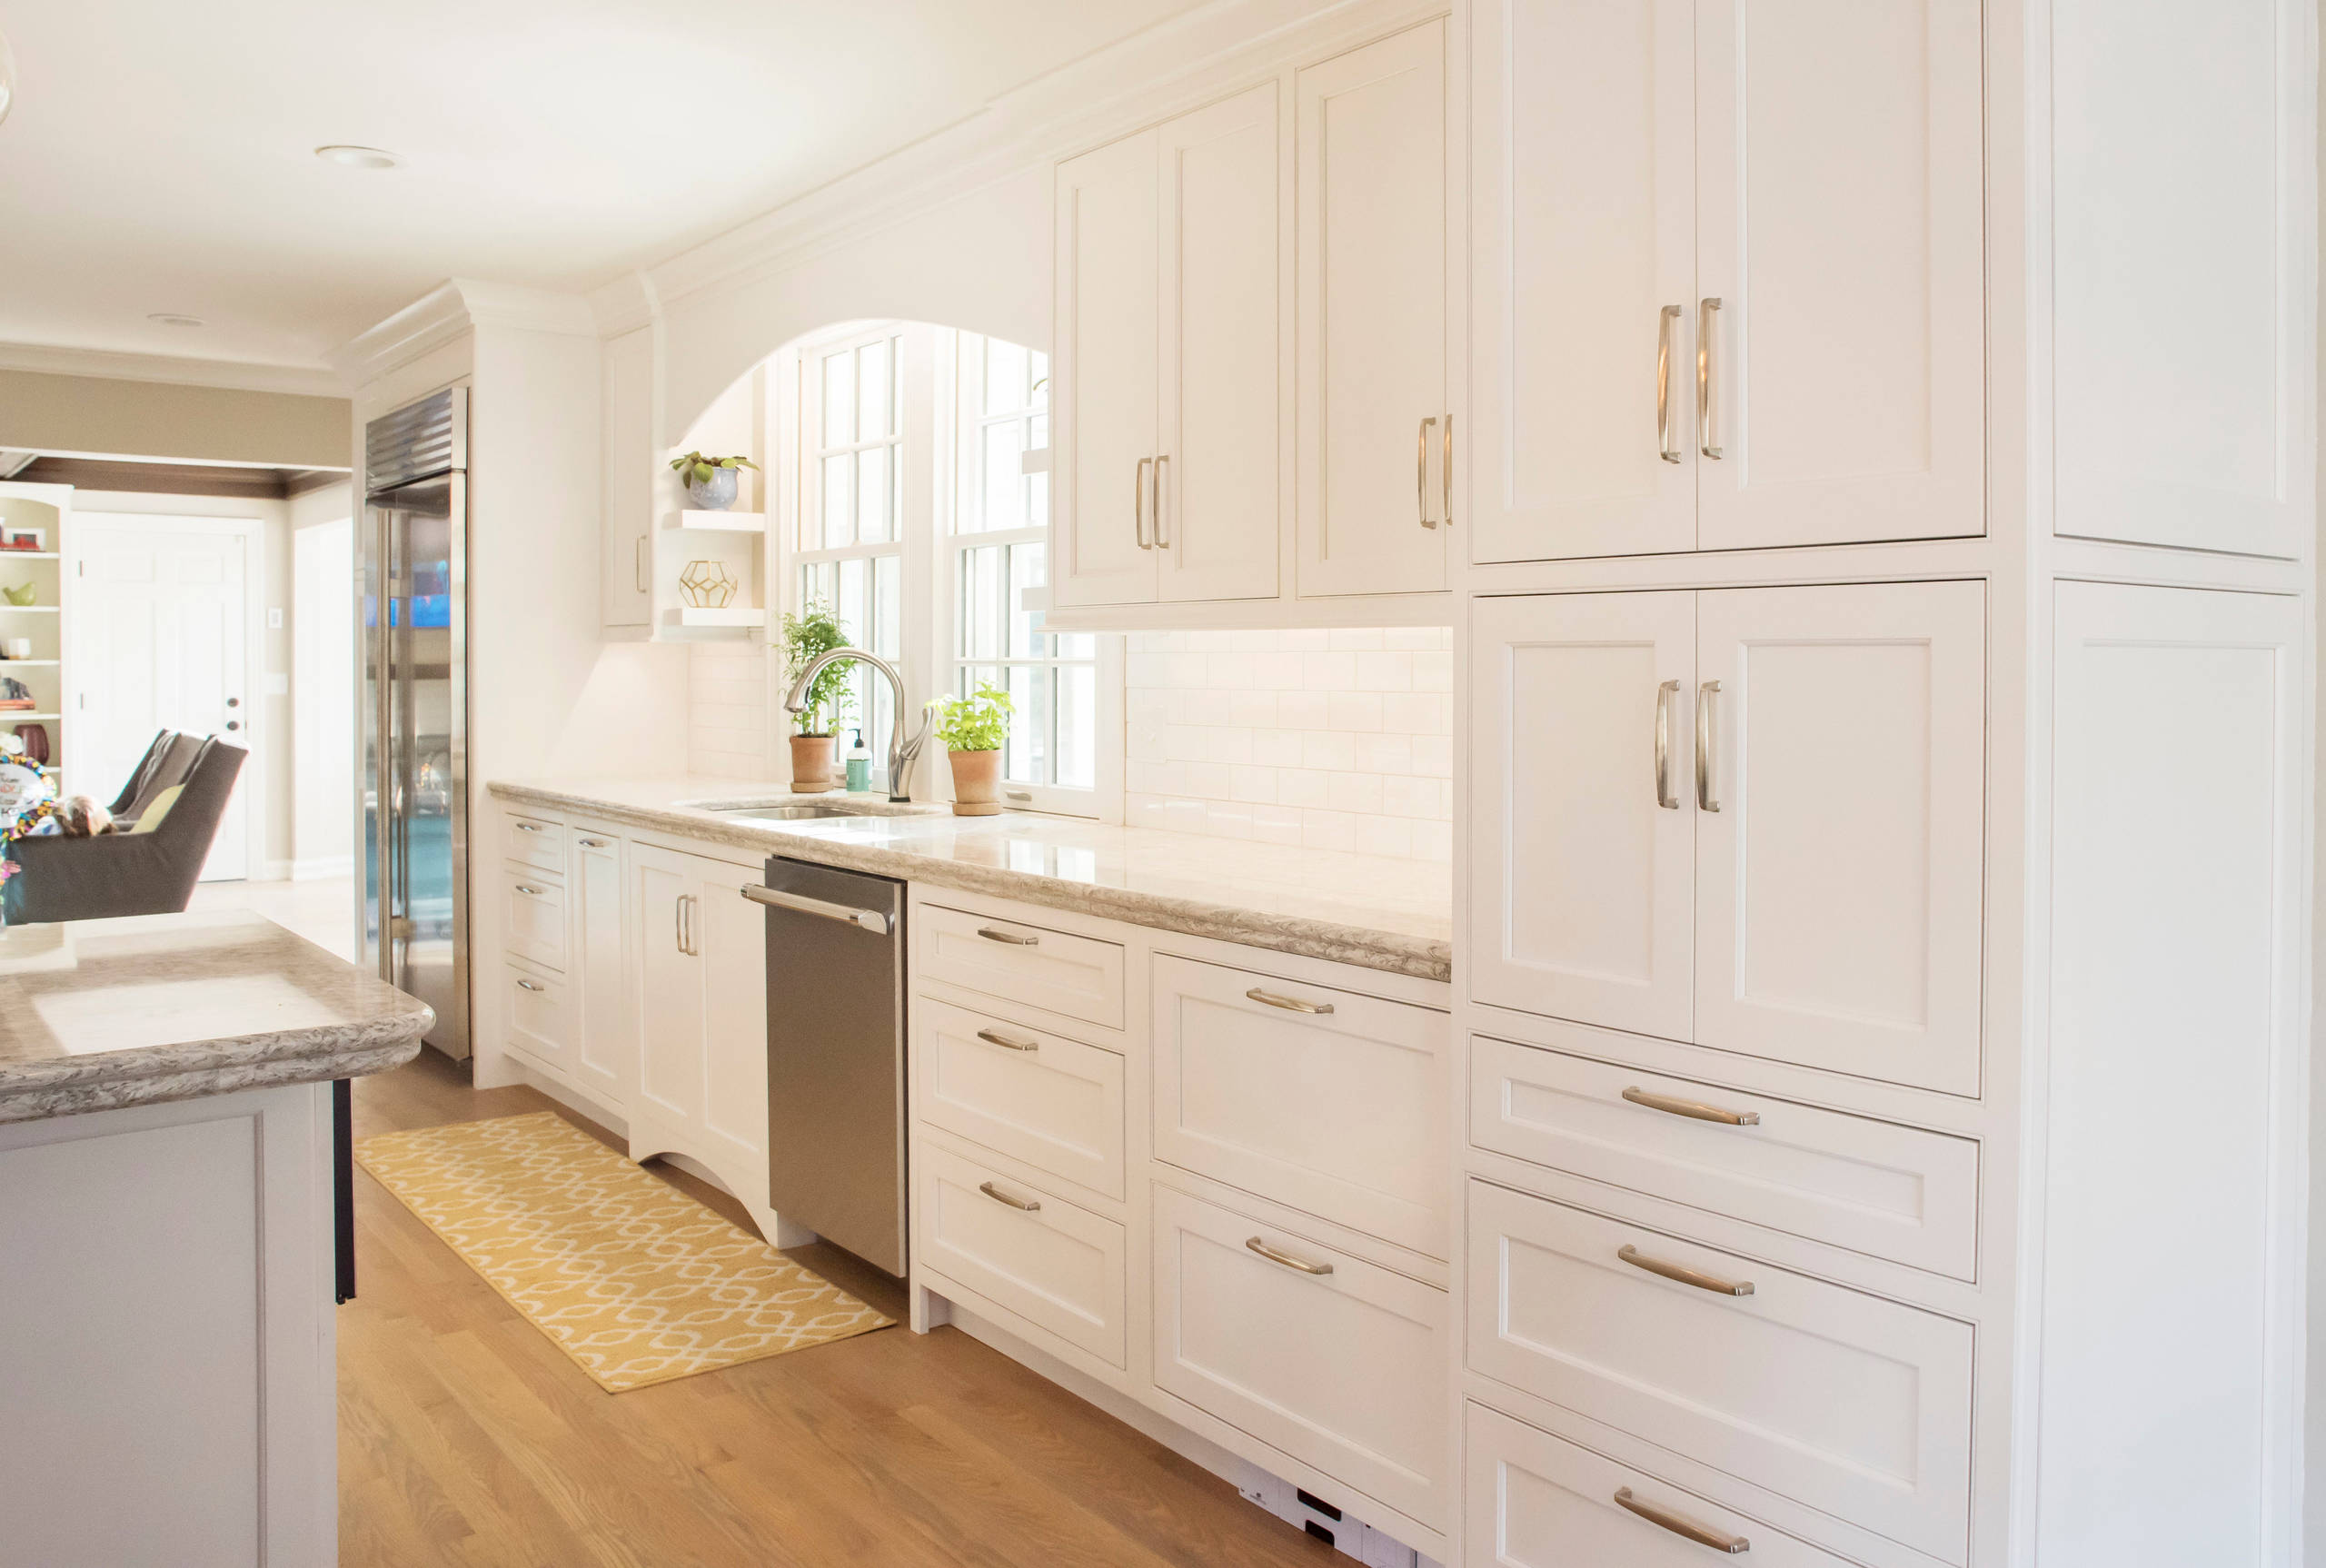 75 Beautiful Kitchen With Beaded Inset Cabinets Pictures Ideas January 2021 Houzz